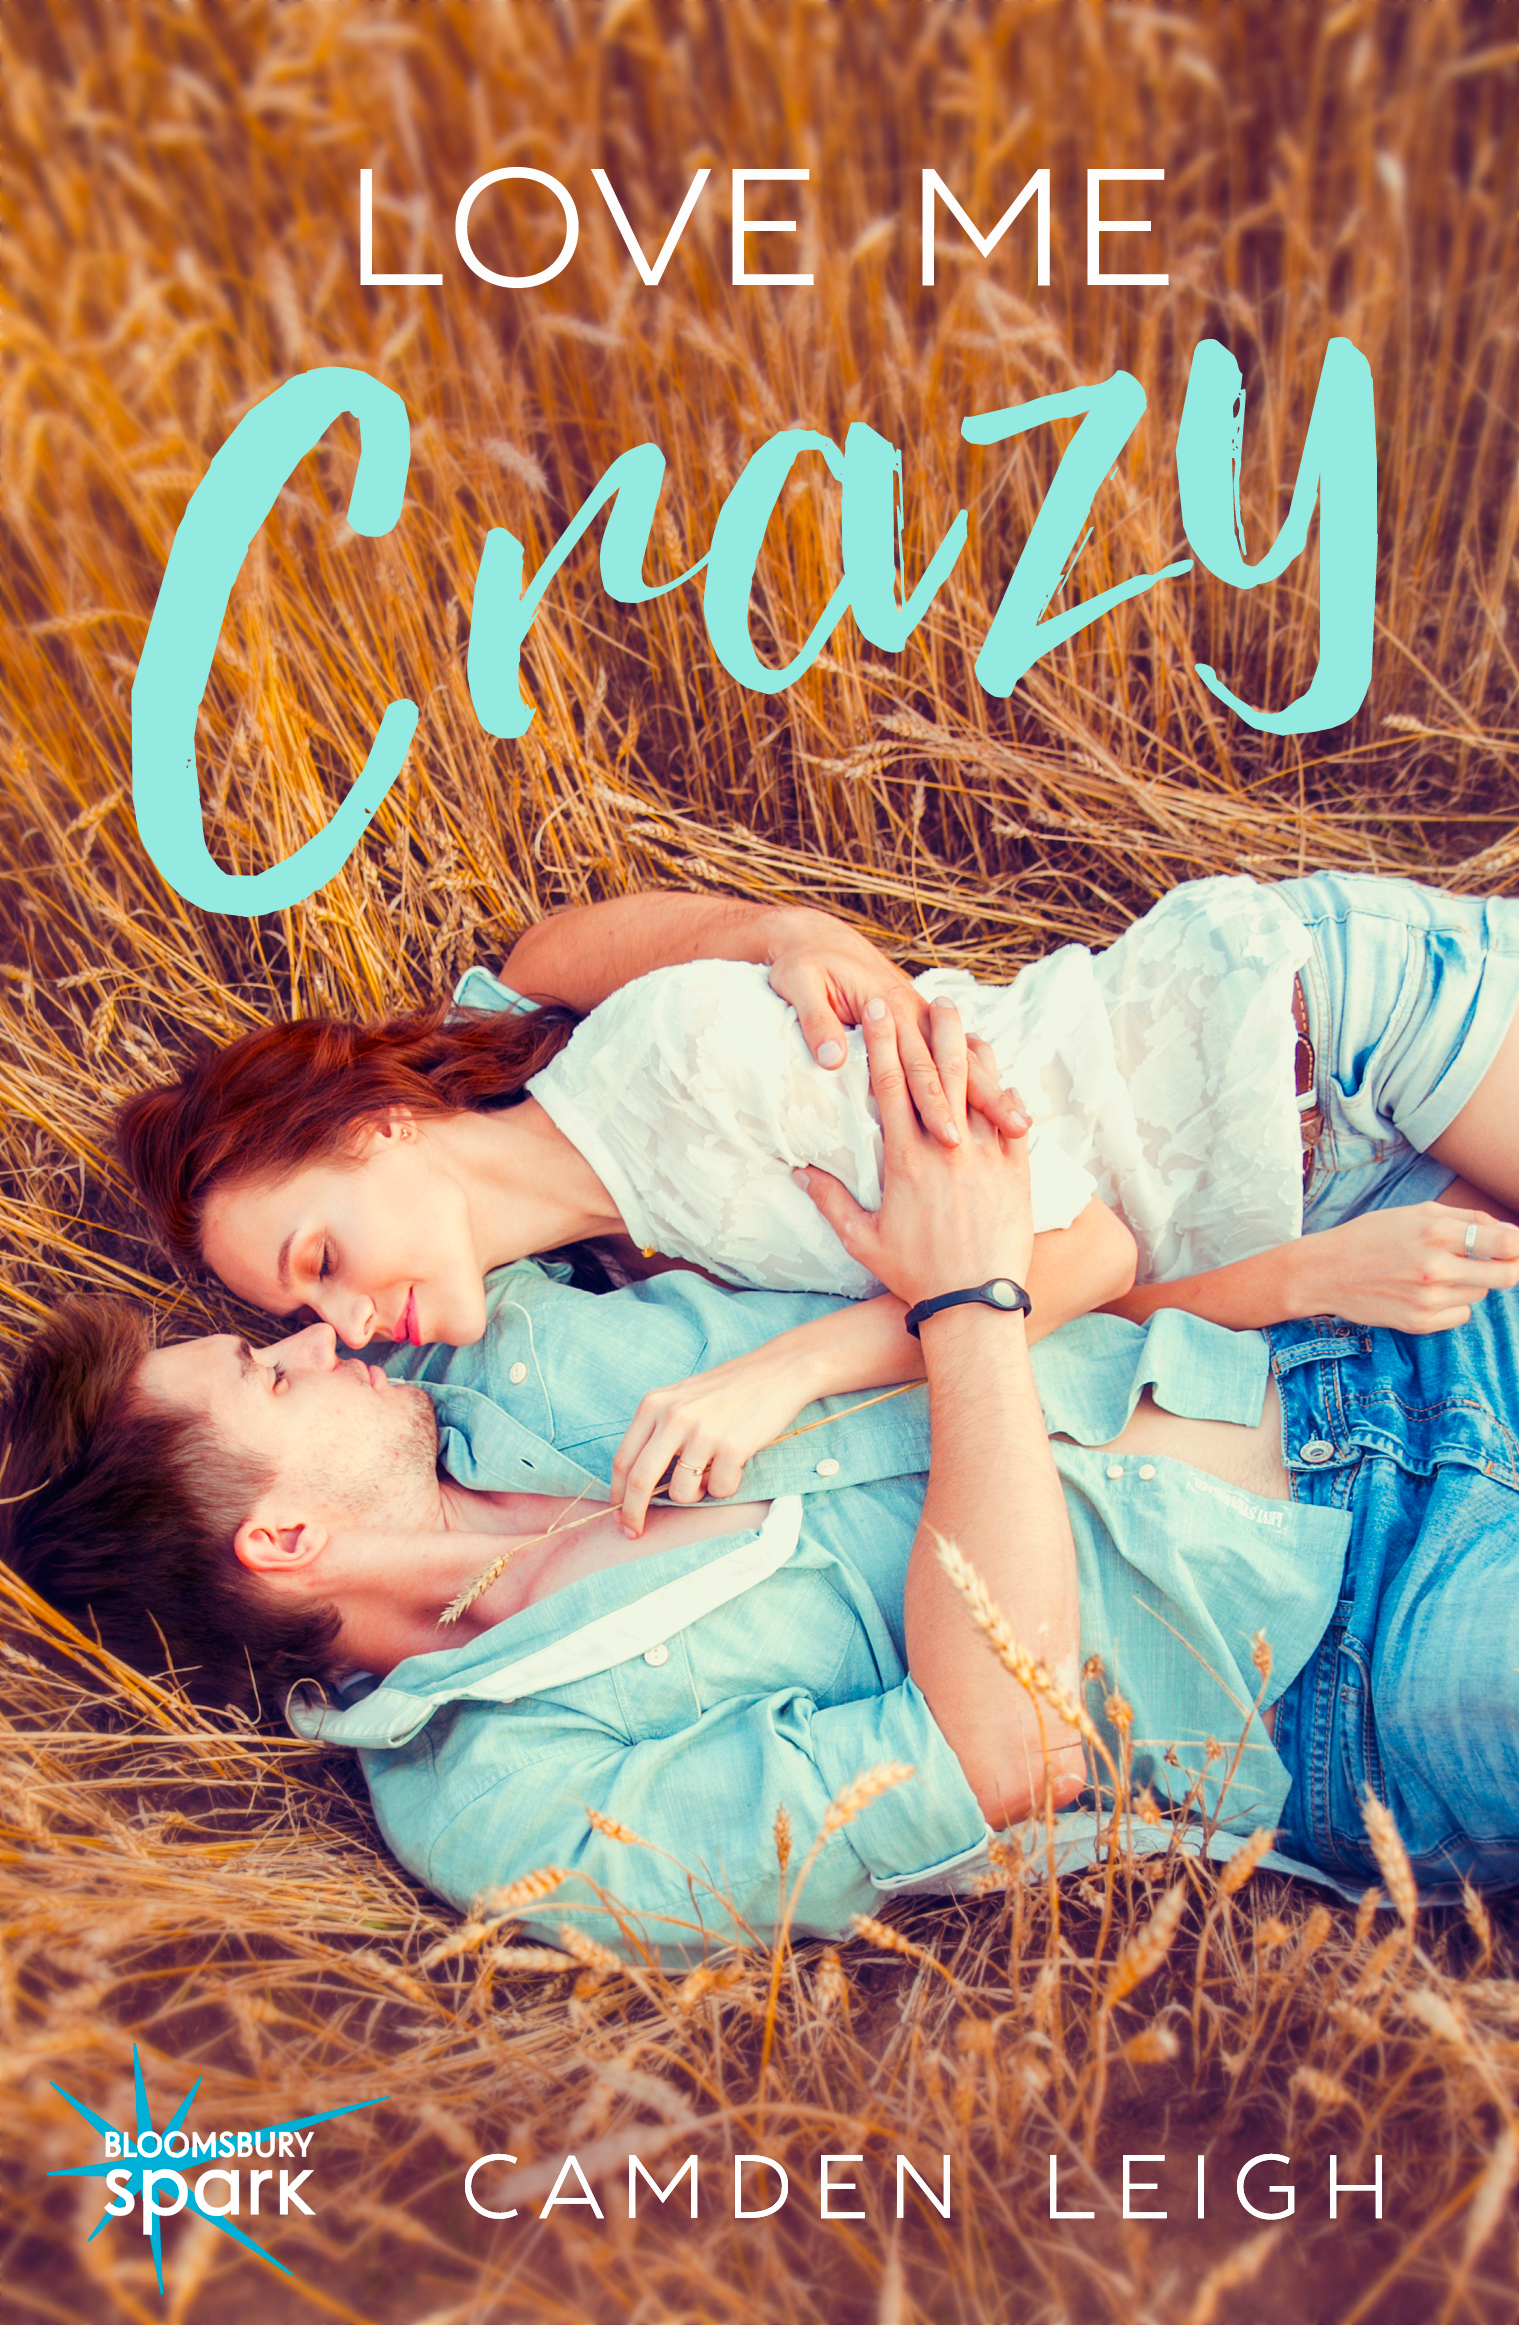 Love Me crazy Camden Leigh new adult NA contemporary romance southern romance